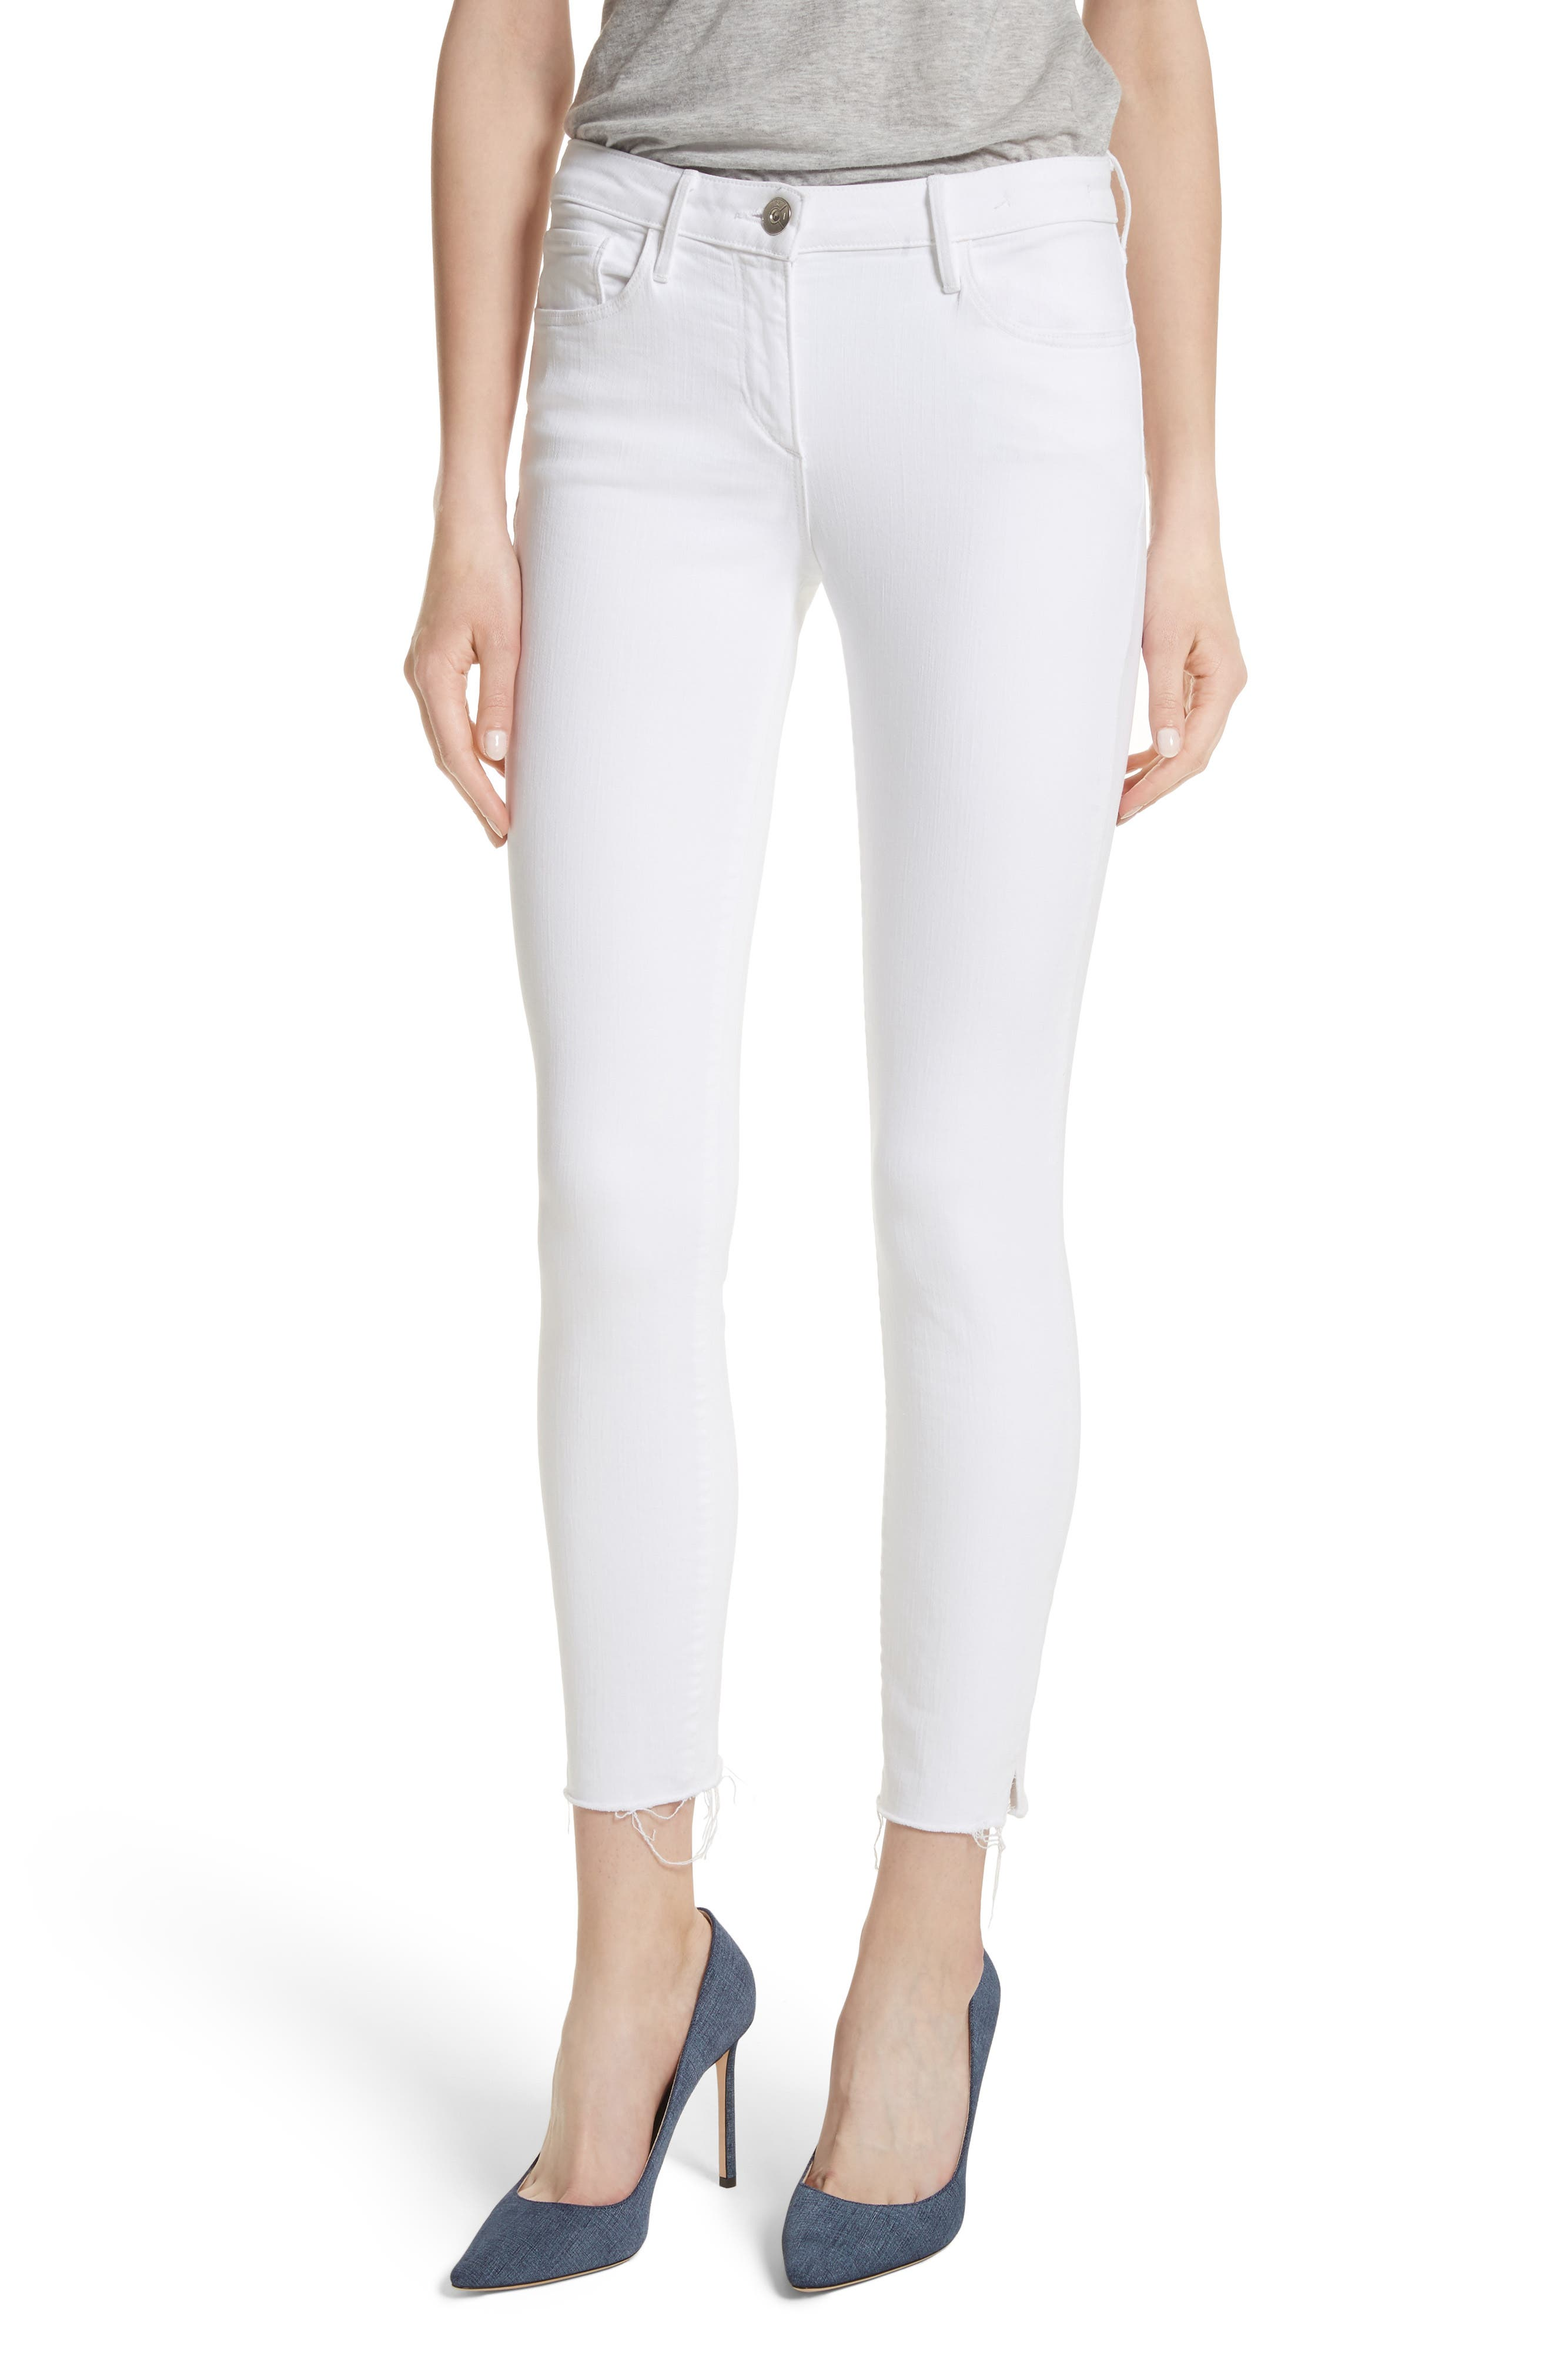 W2 Crop Skinny Jeans,                             Main thumbnail 1, color,                             100